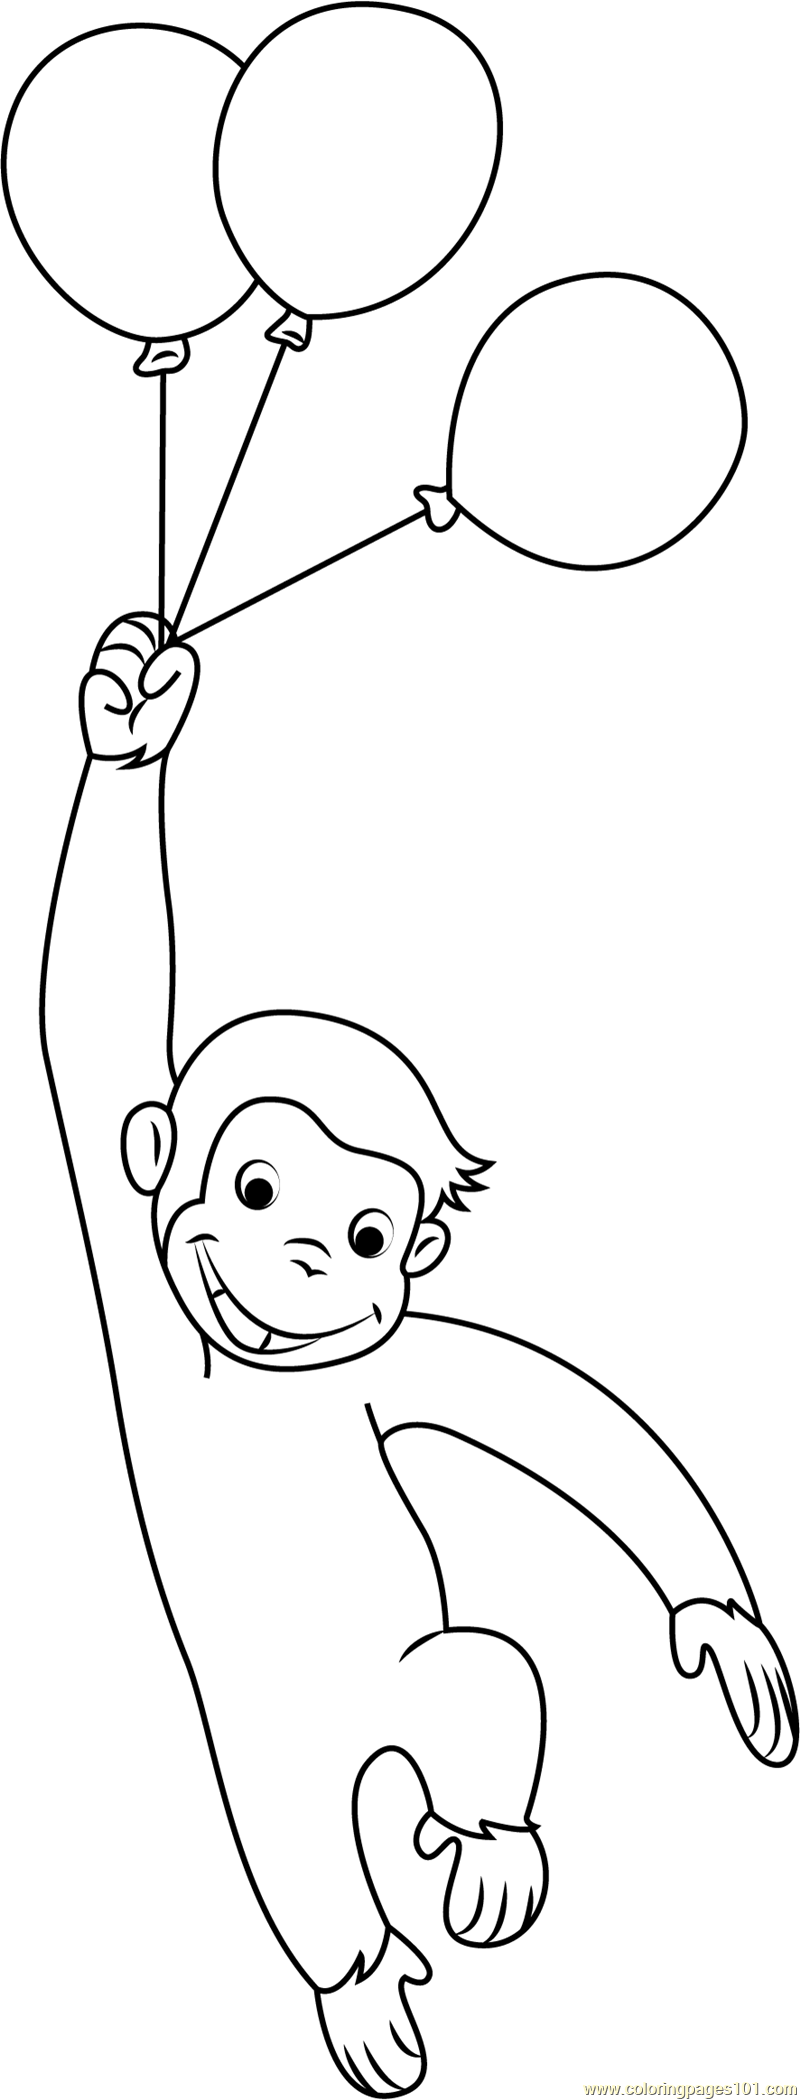 monkey george coloring pages - photo#28